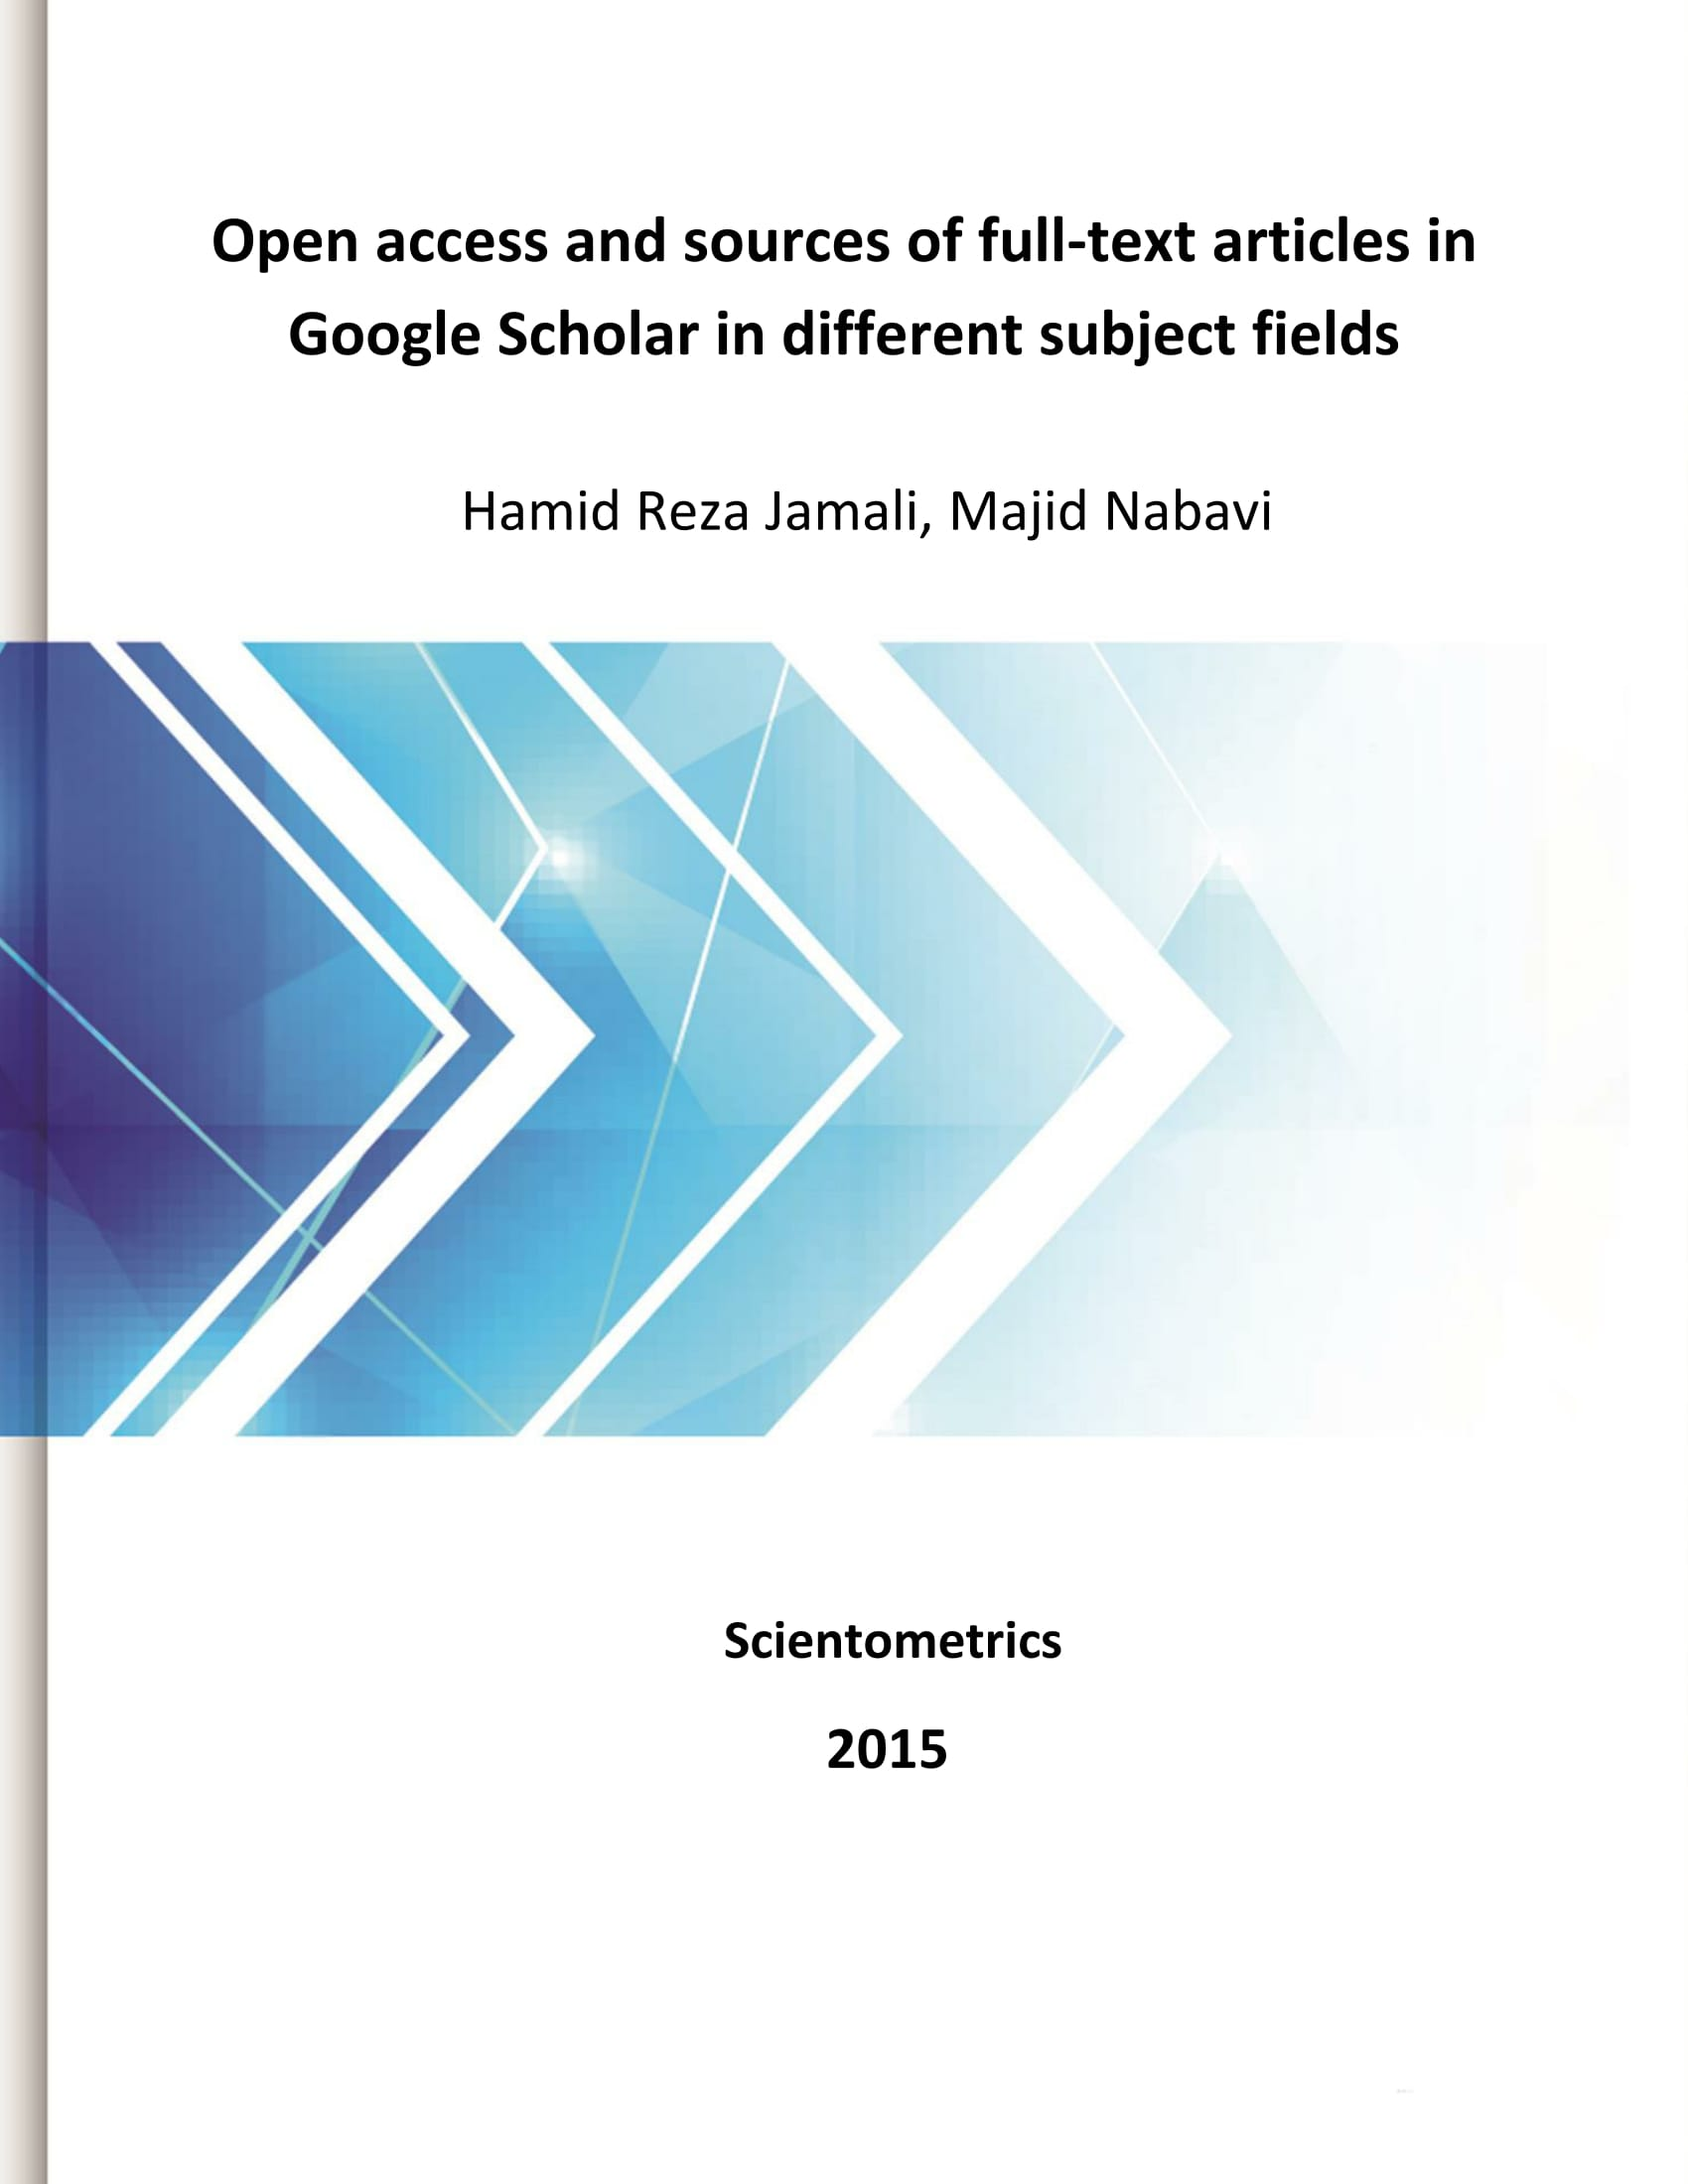 Open access and sources of full-text articles in Google Scholar in different subject fields